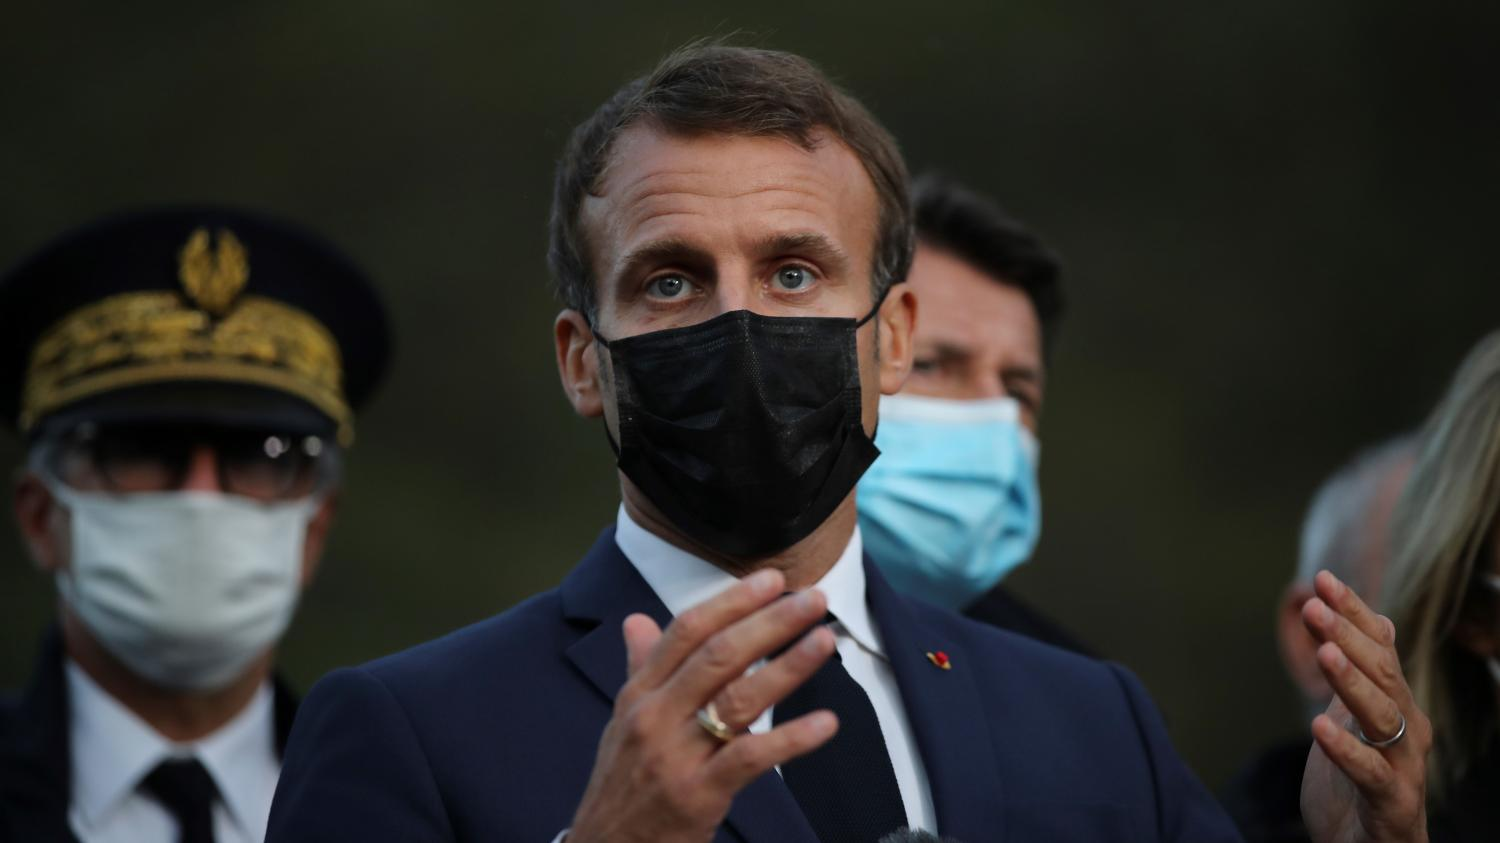 France's Macron mulling more anti-coronavirus restrictions as infections hit all-time high